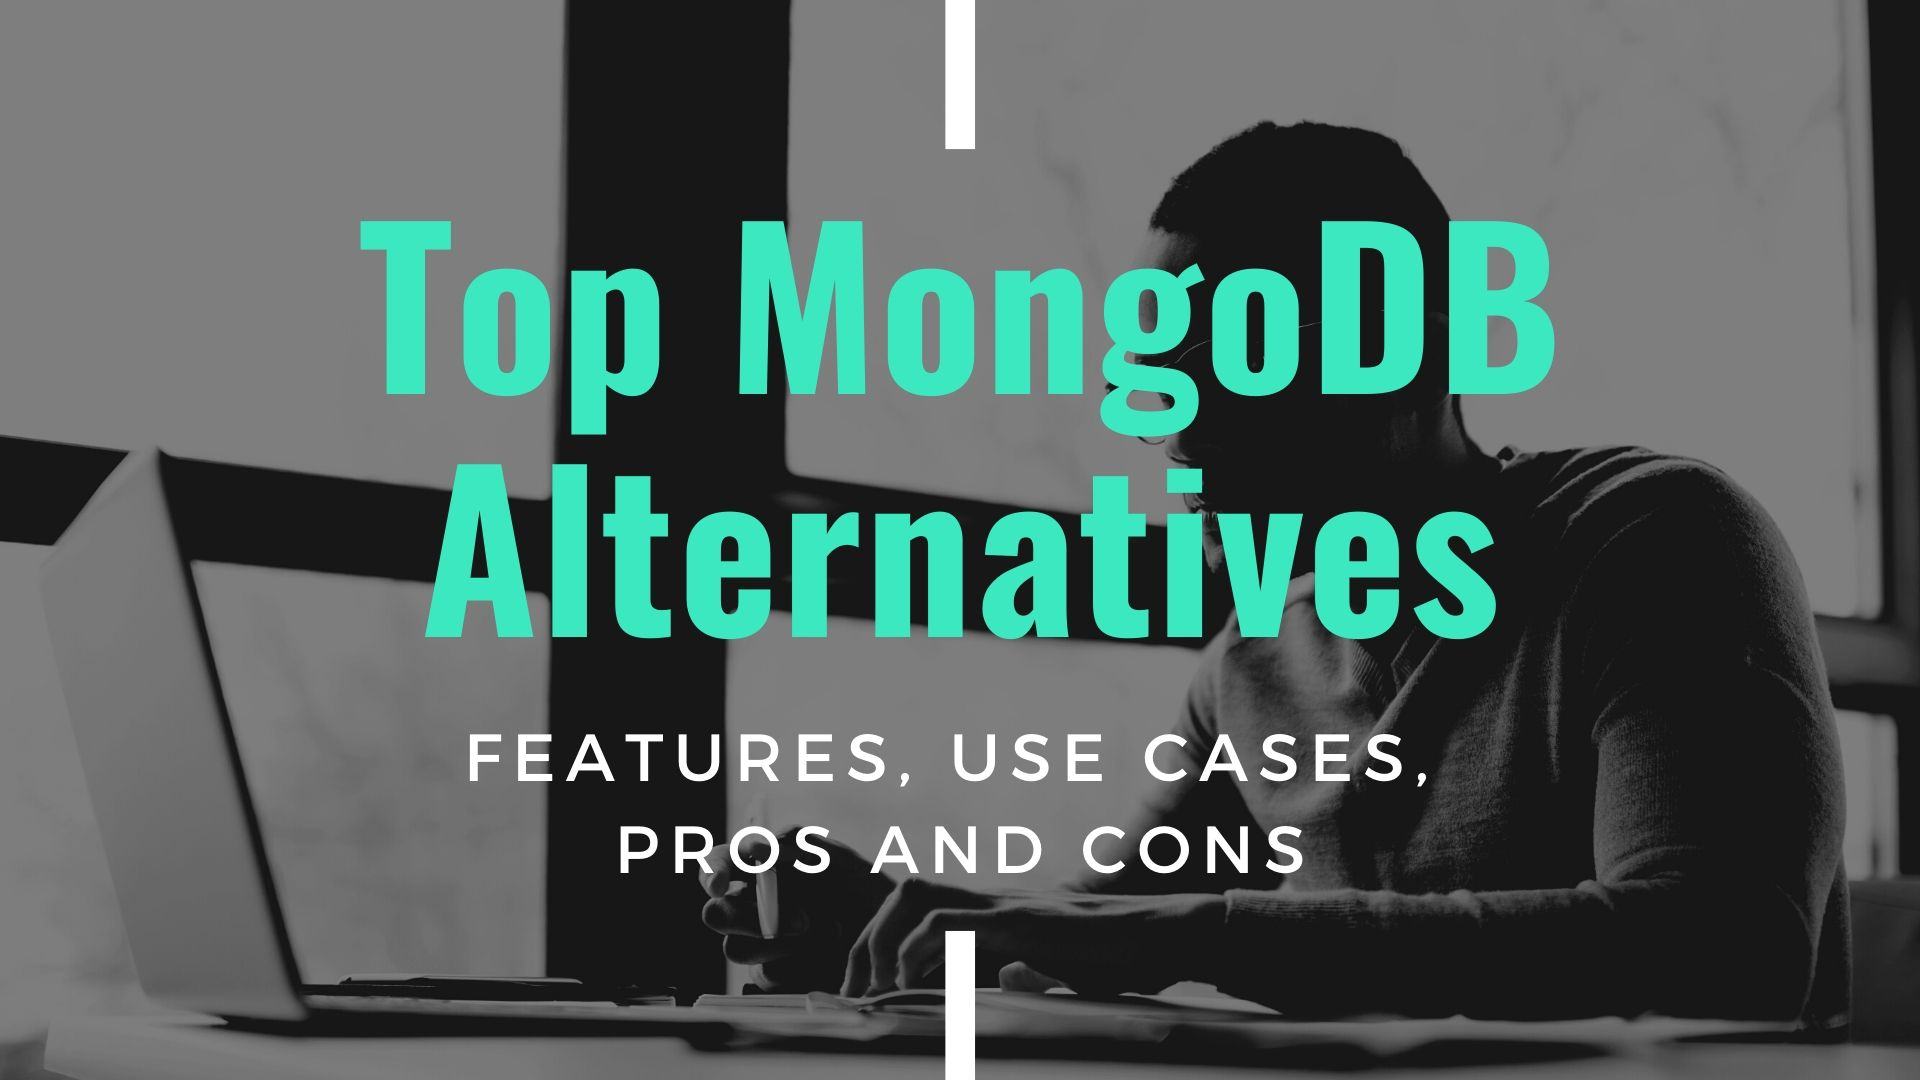 Top MongoDB Alternatives - Features, Use Cases, Pros and Cons